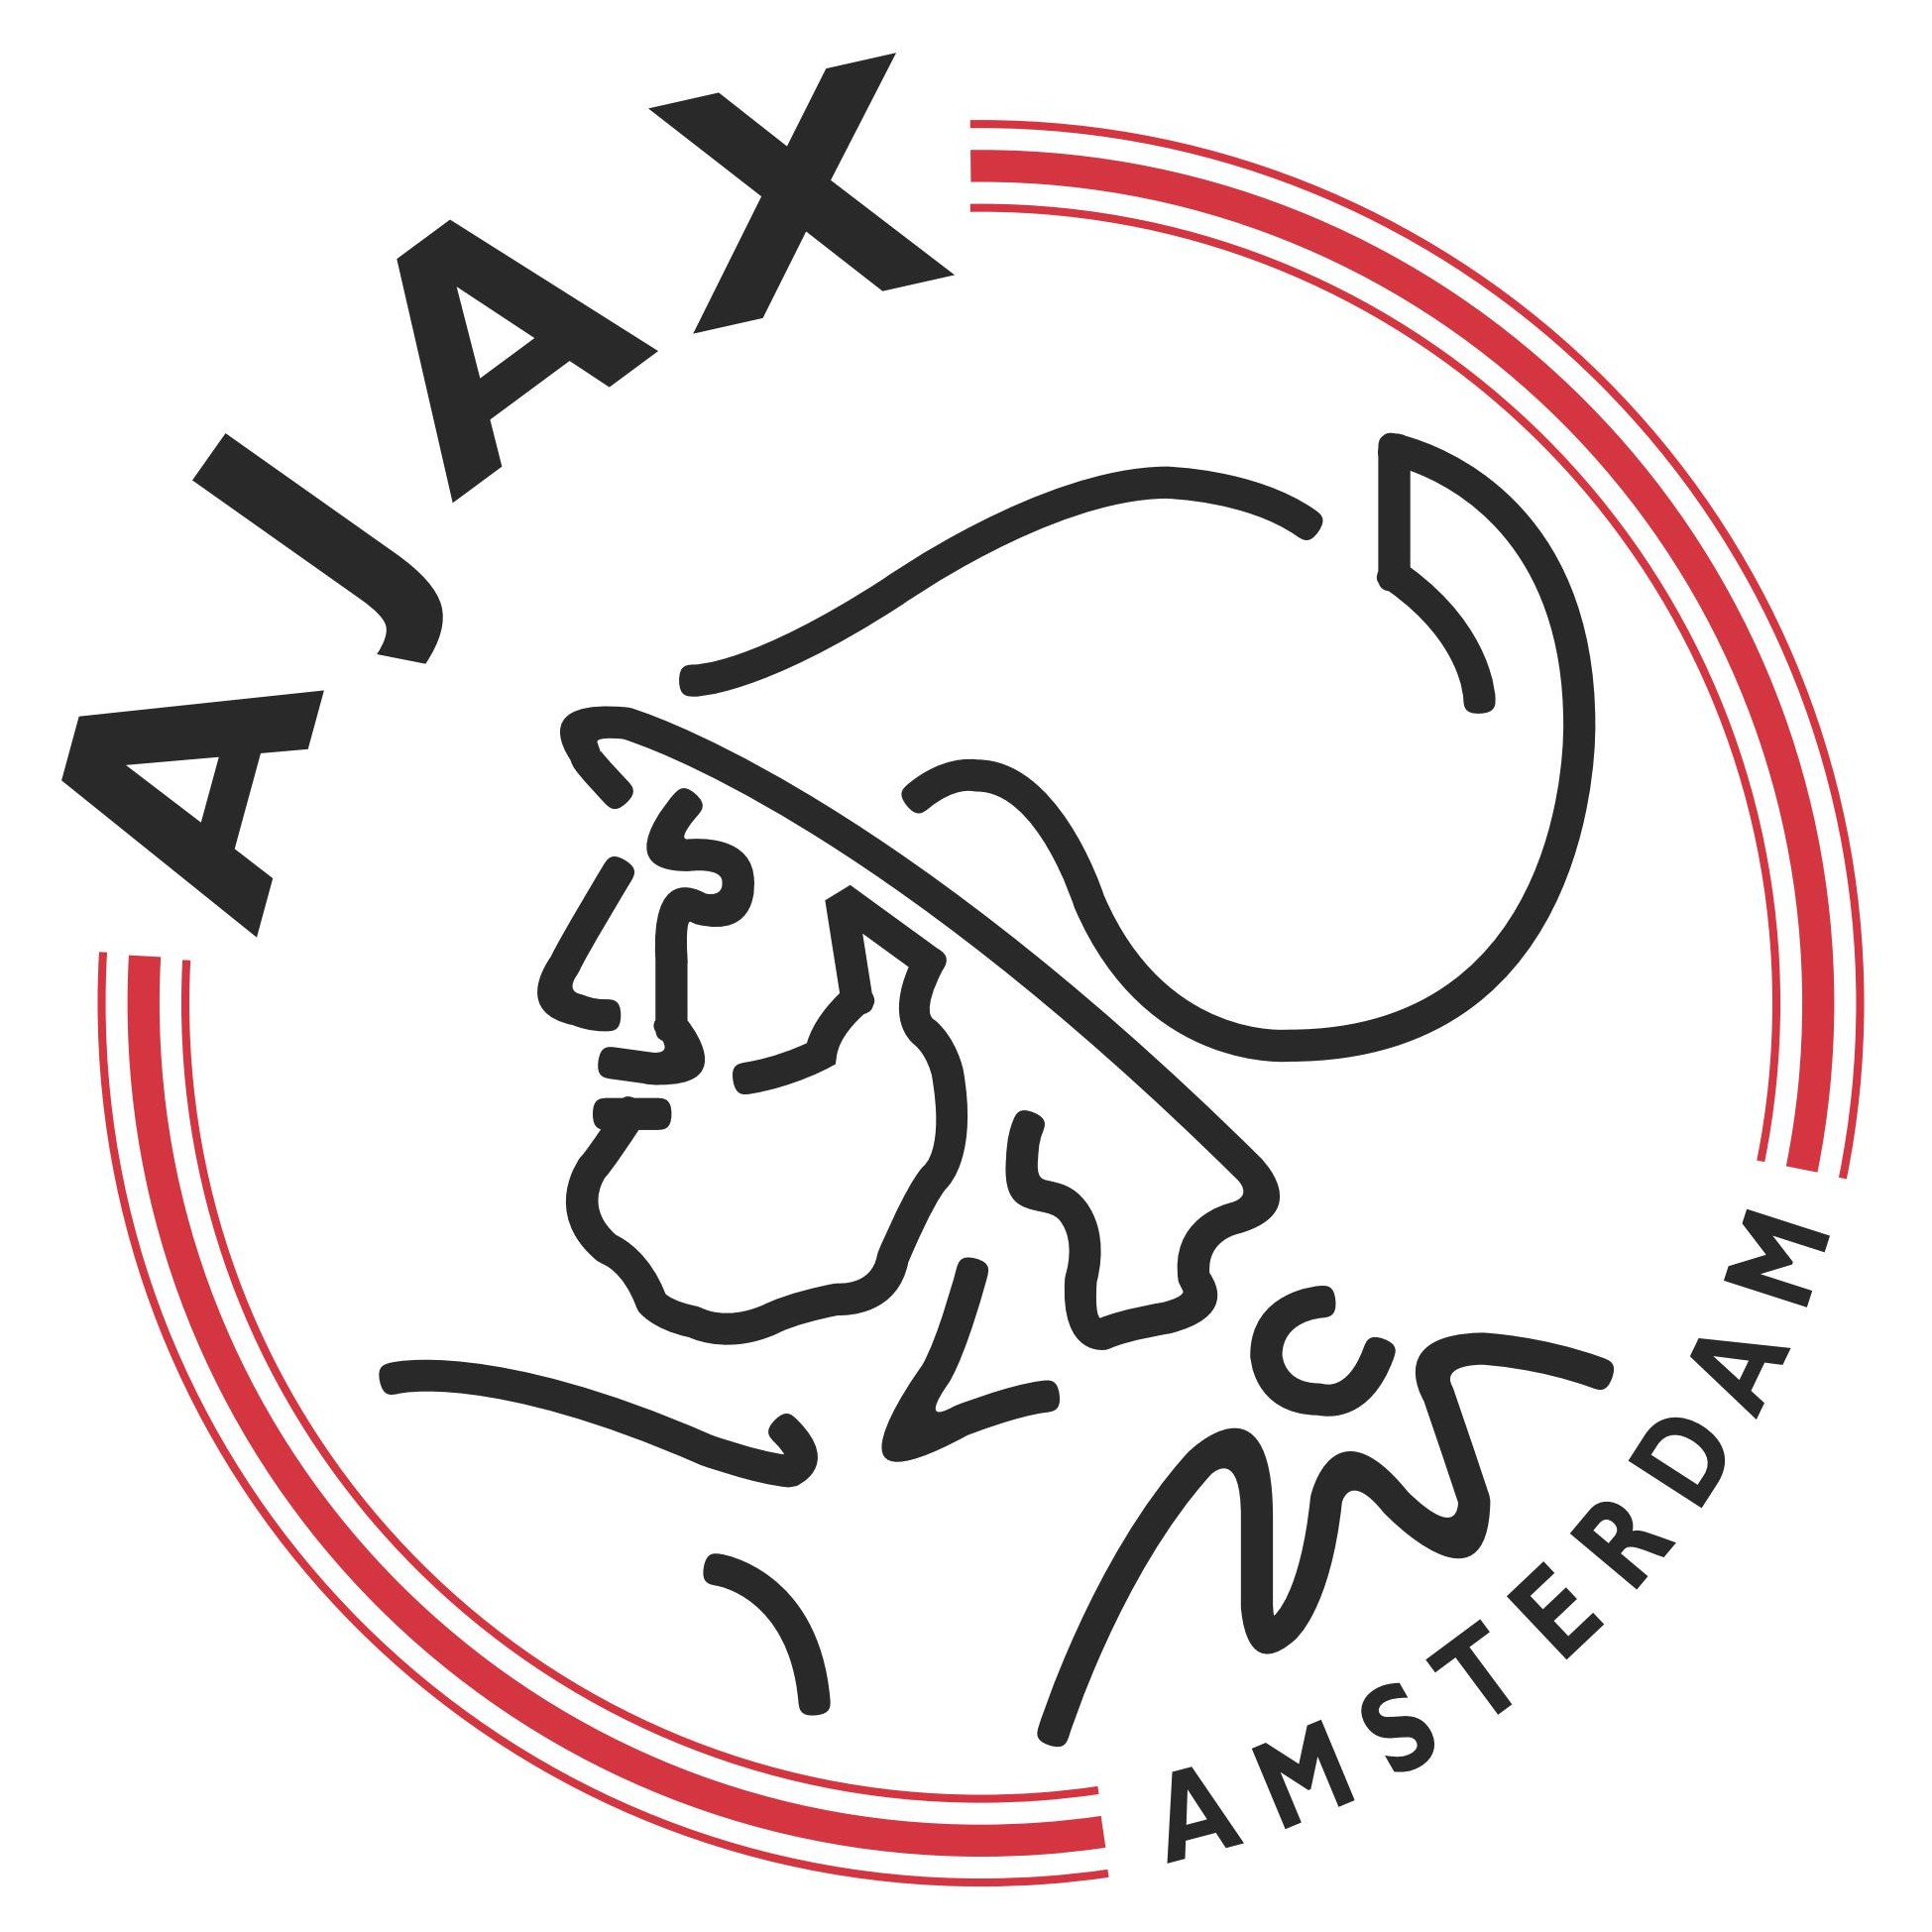 1000+ images about Ajax on Pinterest.